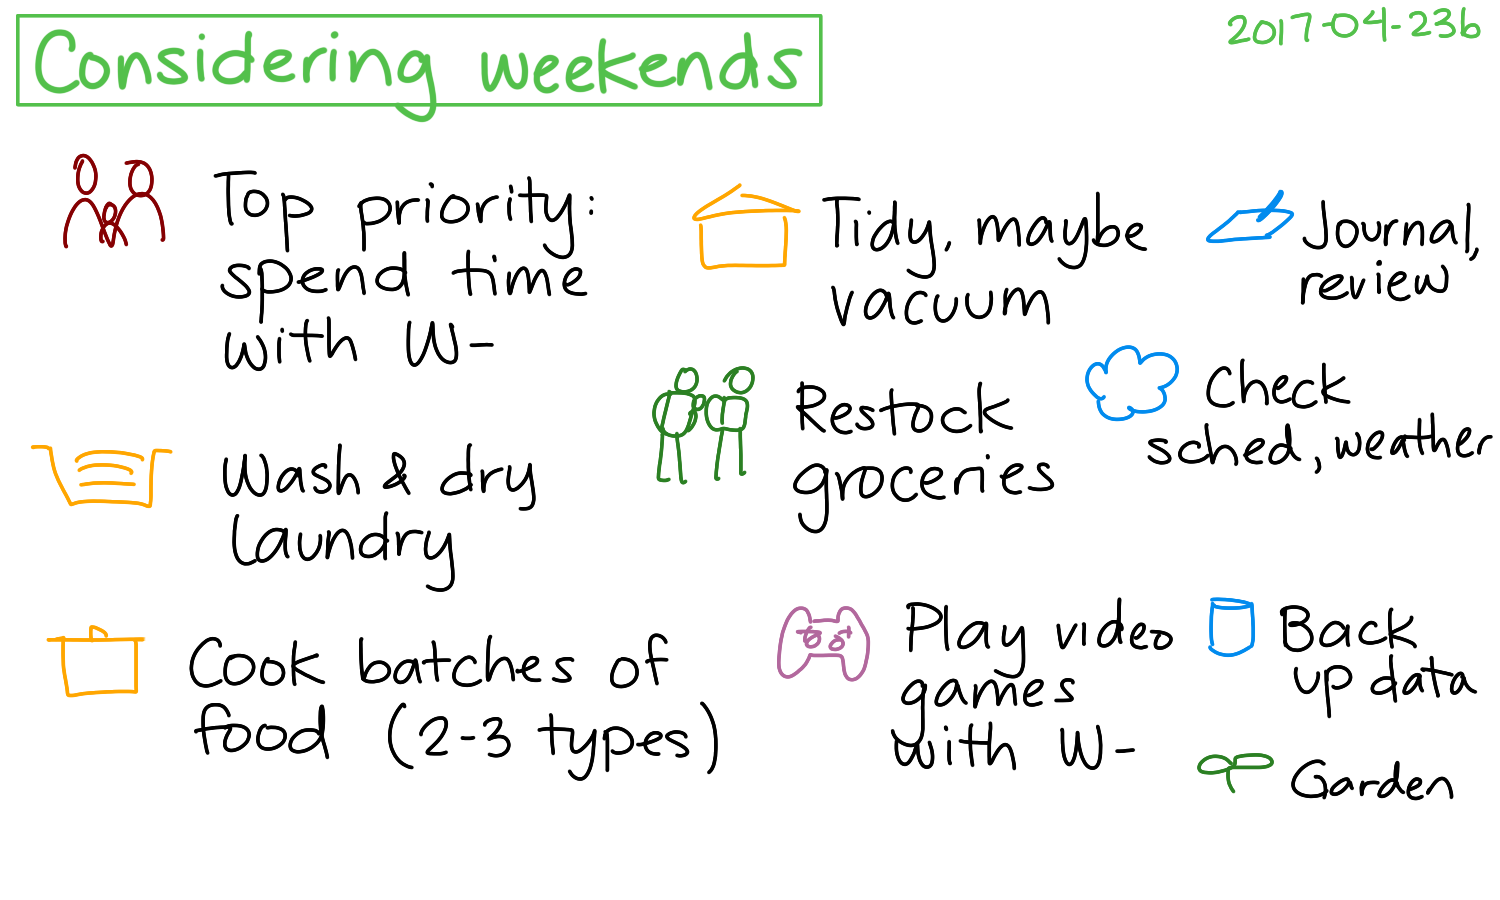 2017-04-23b Considering weekends #time #routines.png